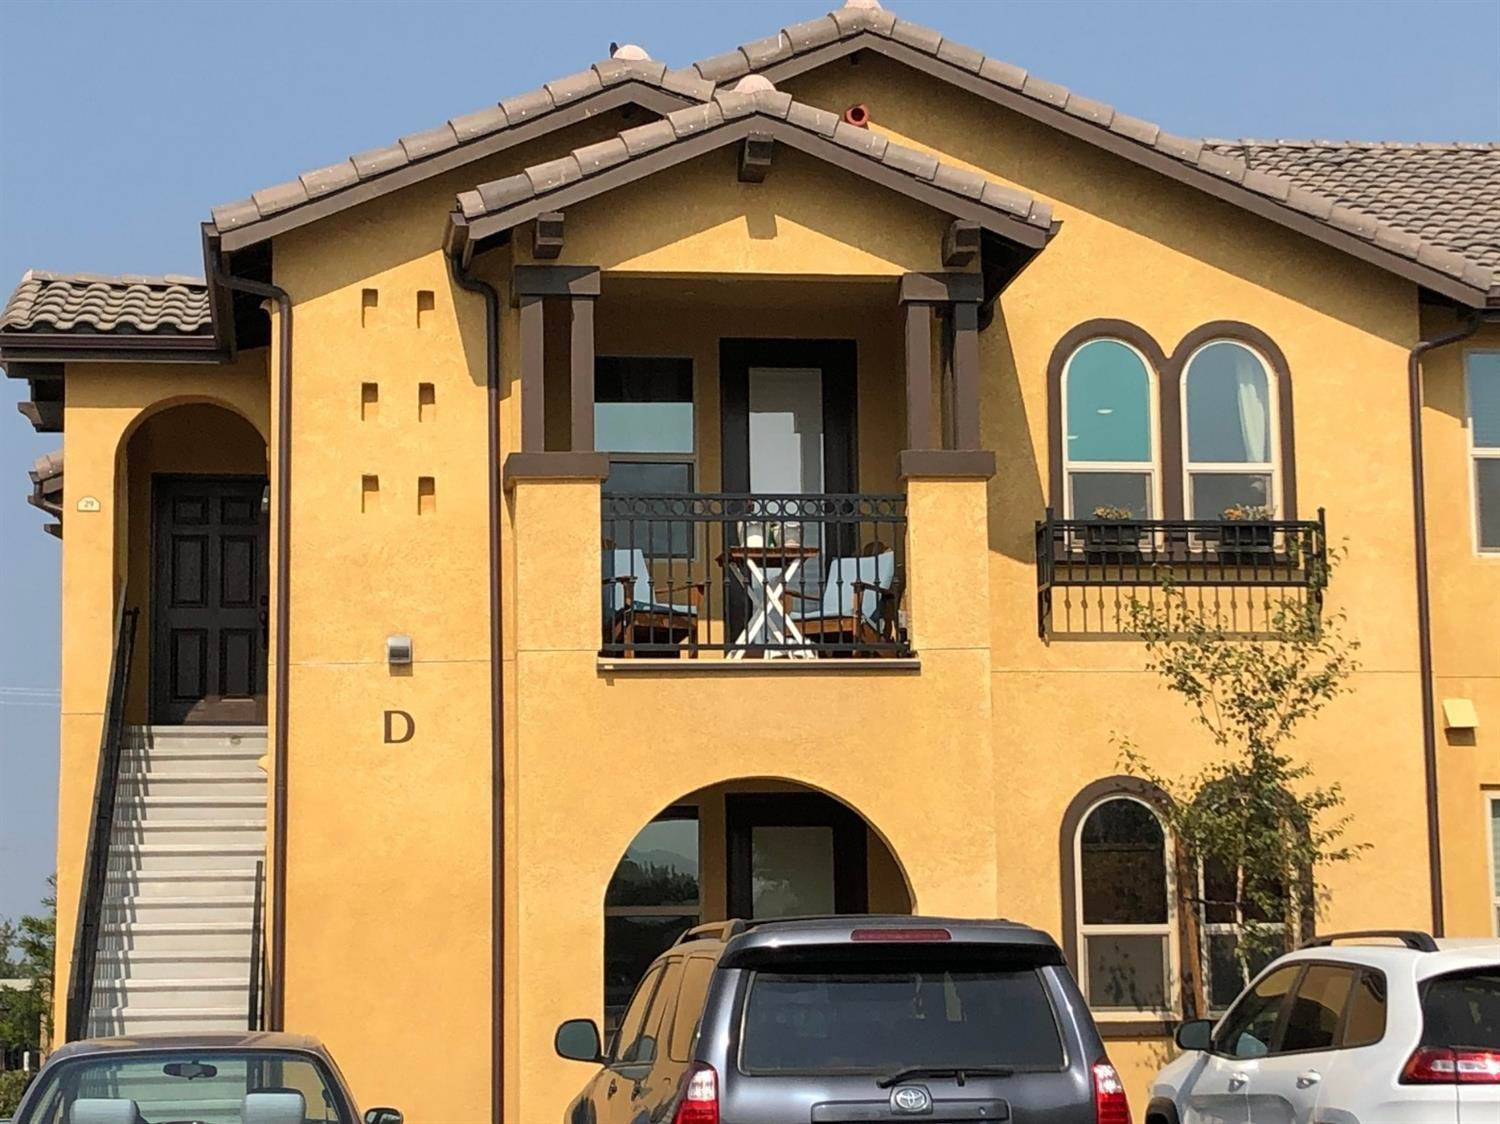 140 Ivy Ave #D-29, Patterson, California